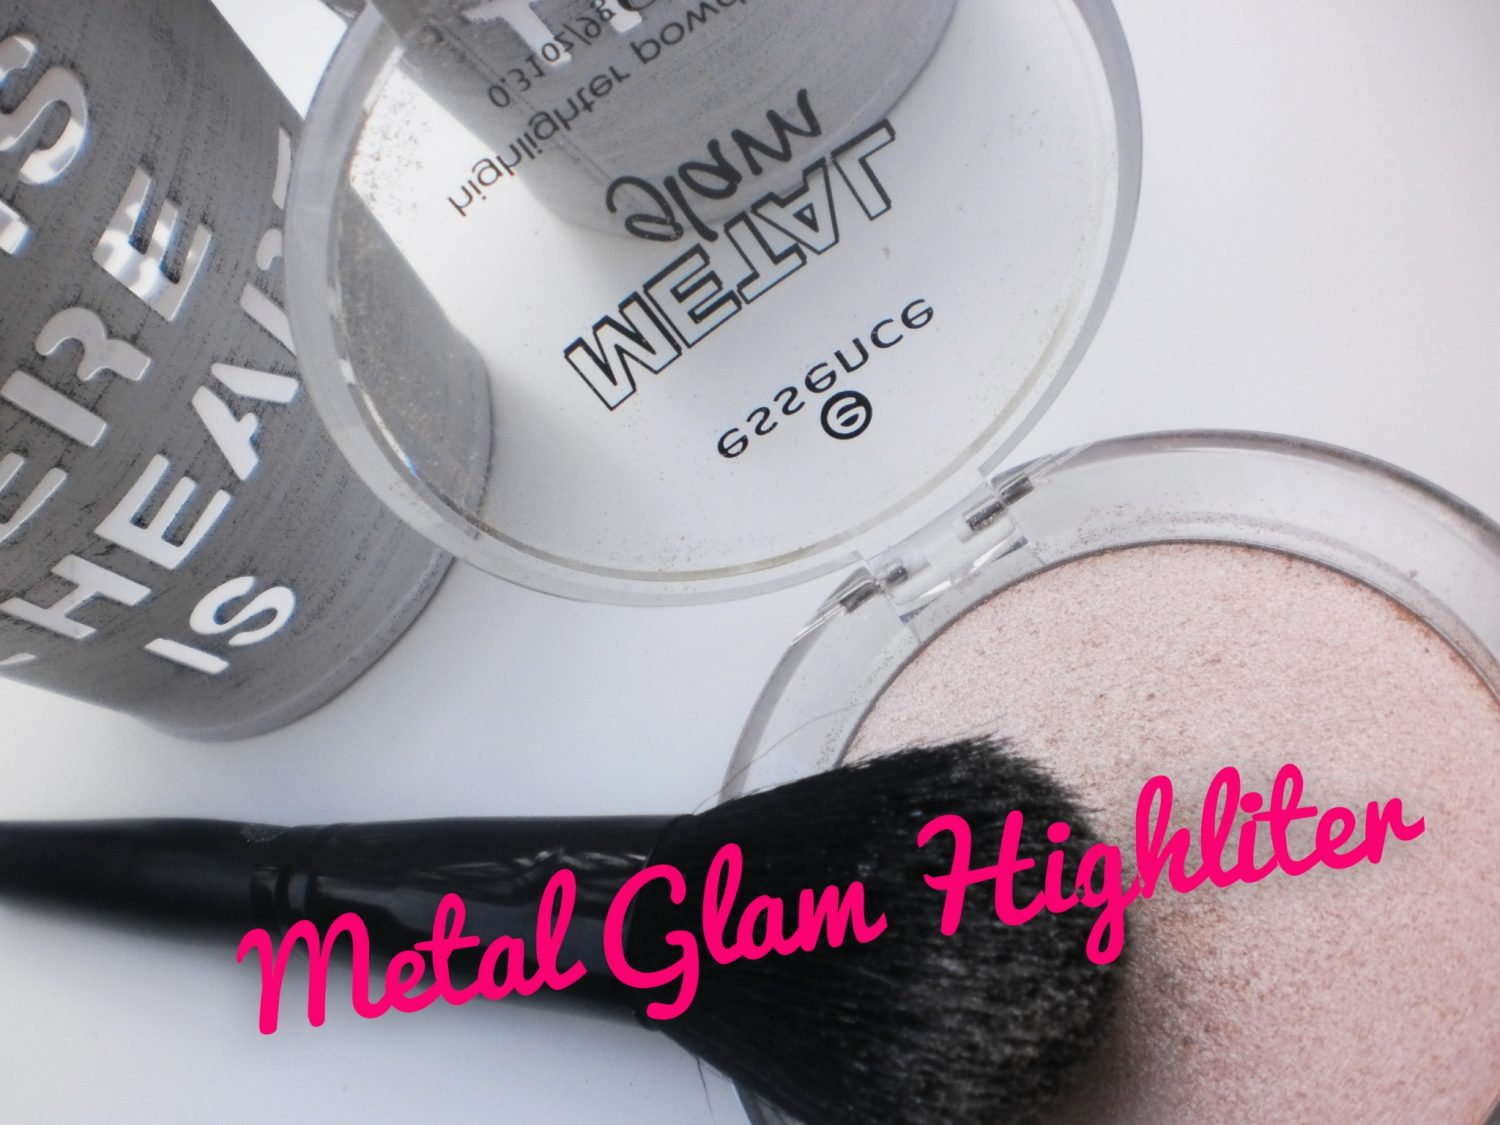 Review: Essence Metal Glam Highliter Powder